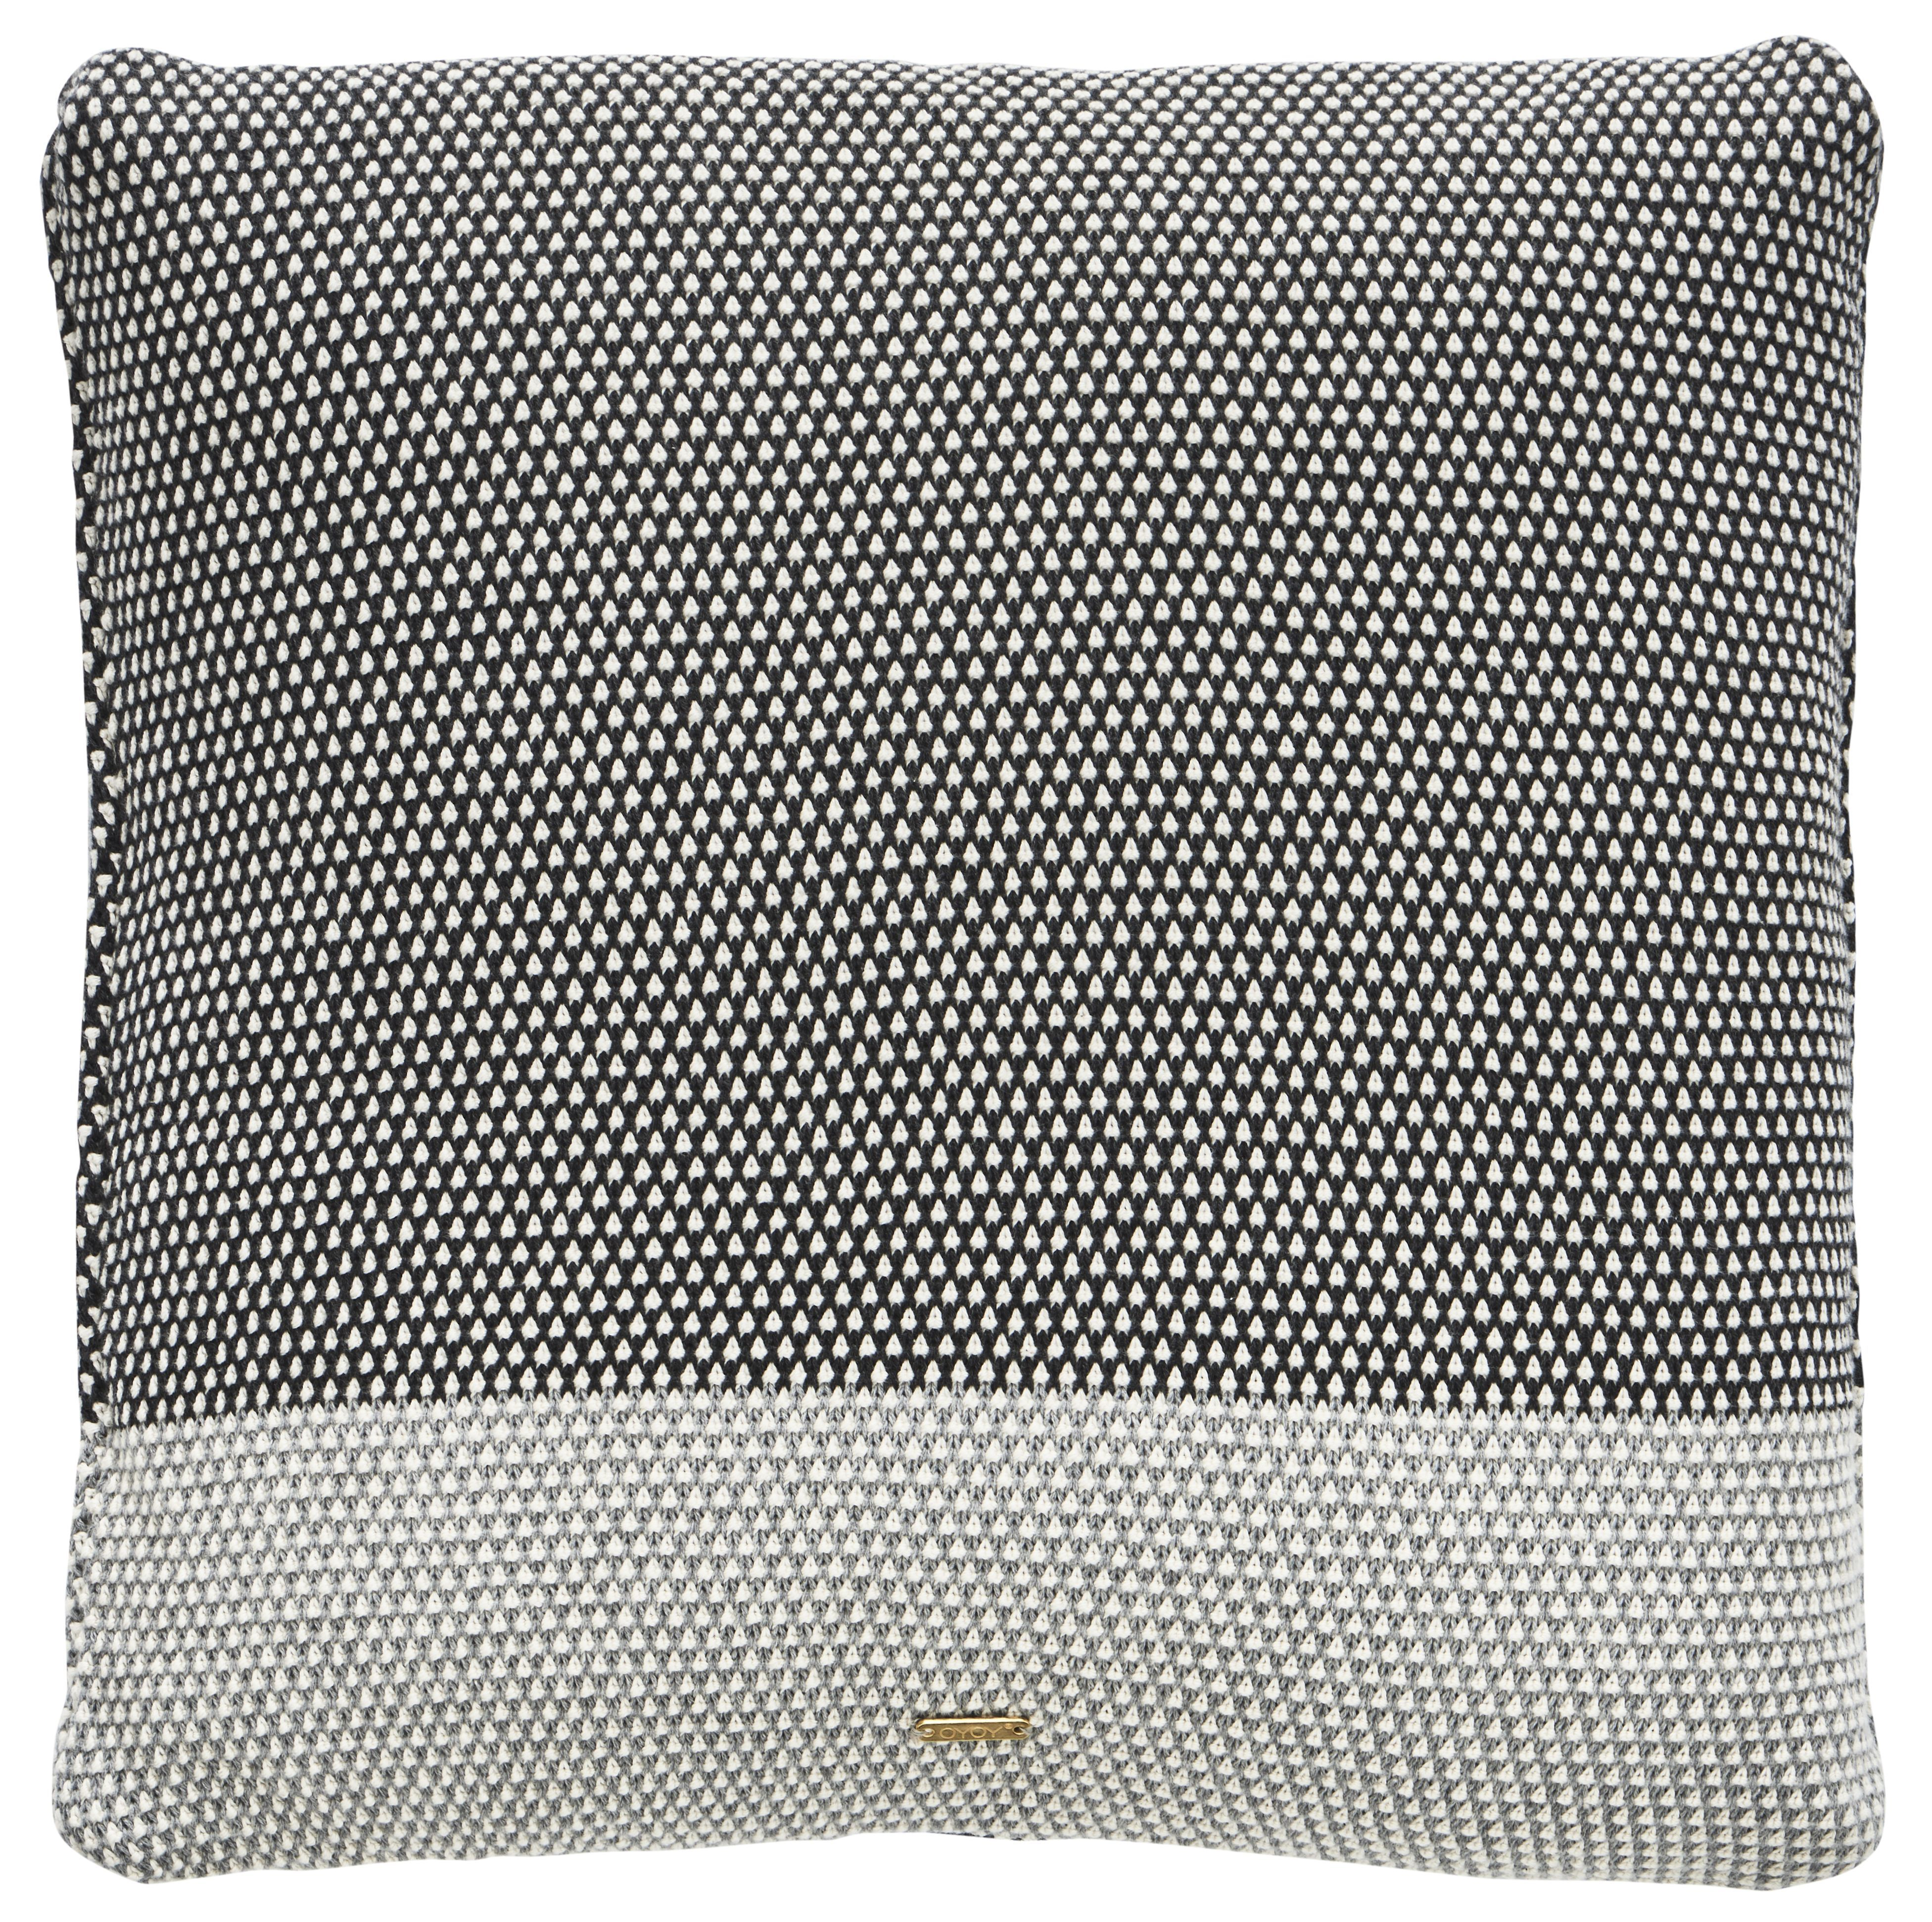 Koke pillow in grey u anthracite design by oyoy pillows colour